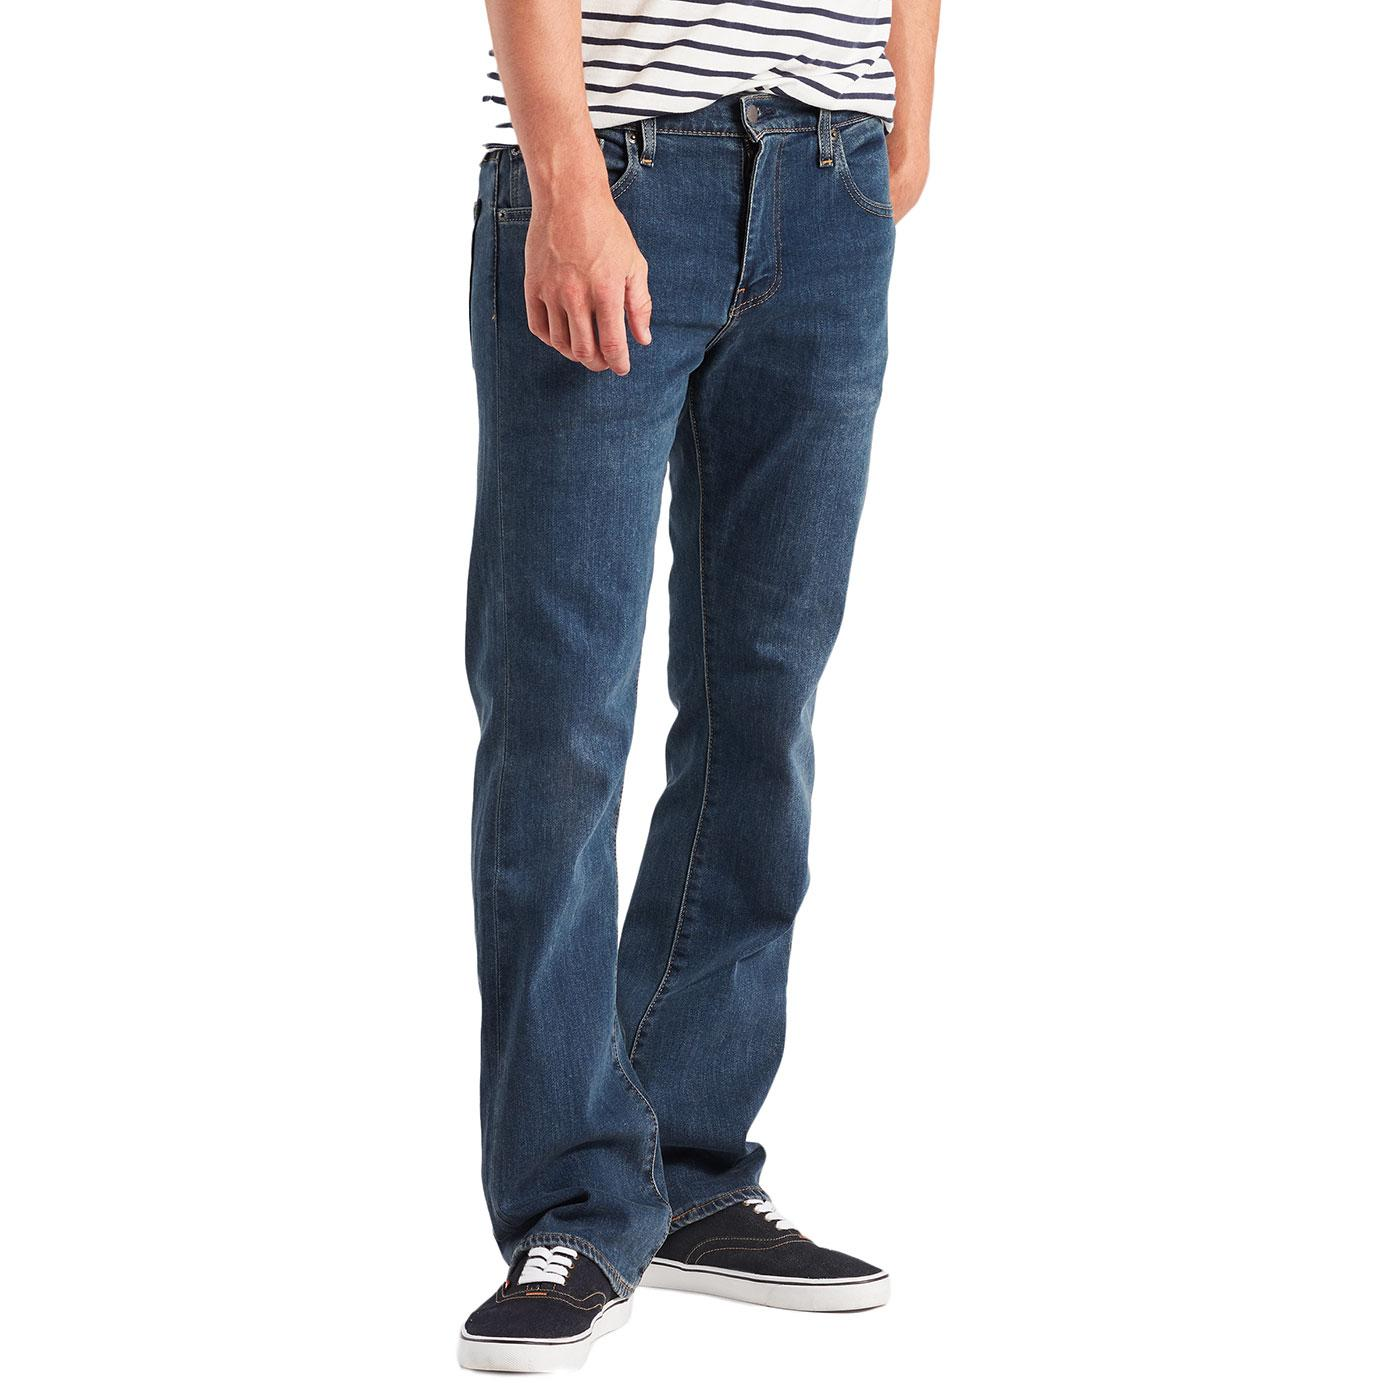 LEVI'S 527 Retro Slim Boot Cut Jeans (Mid Blue)